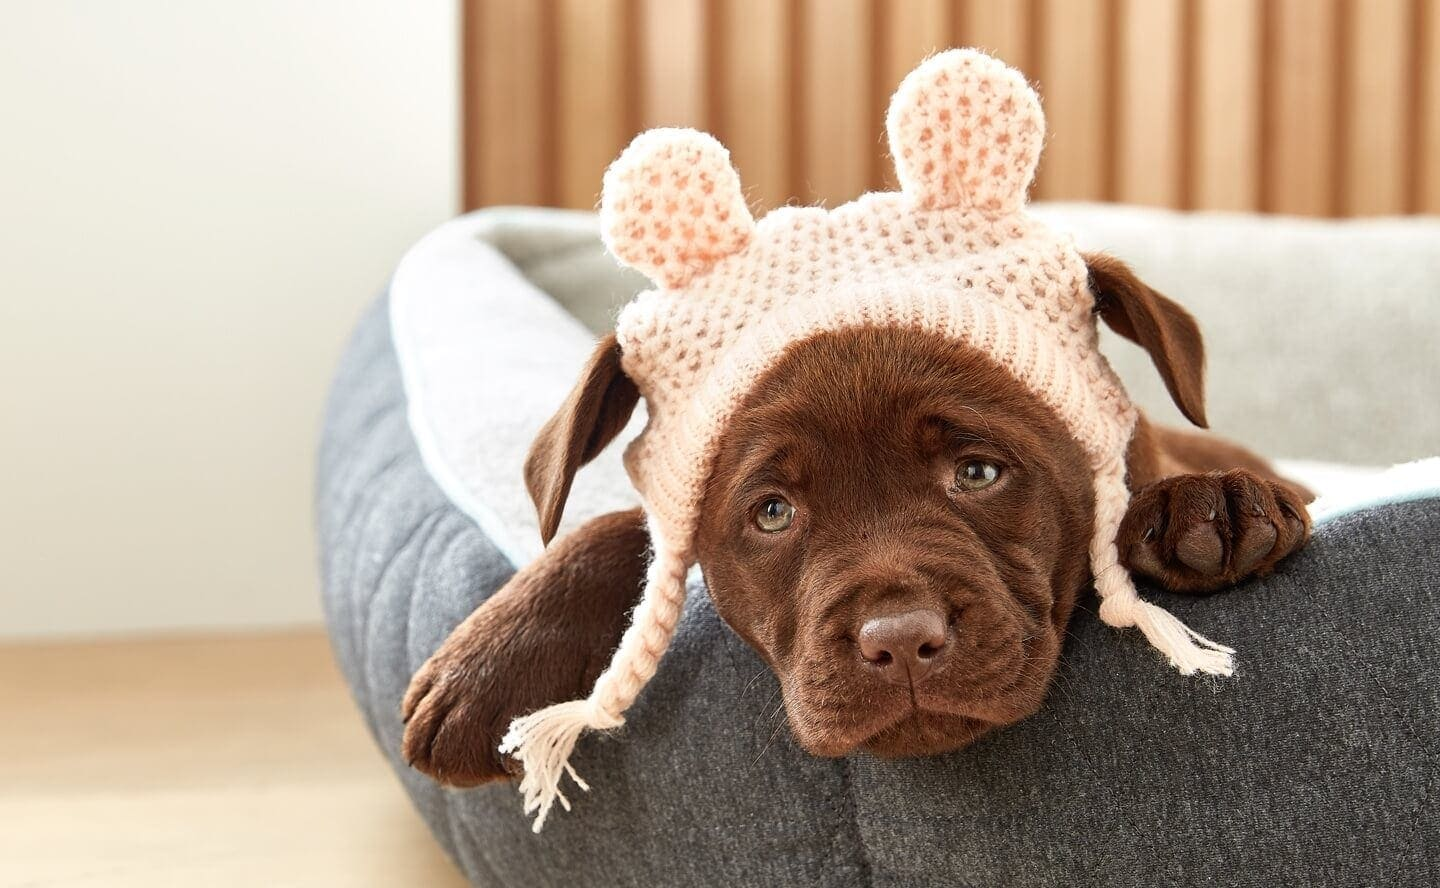 kmart pet accessories on brown chocolate labrador